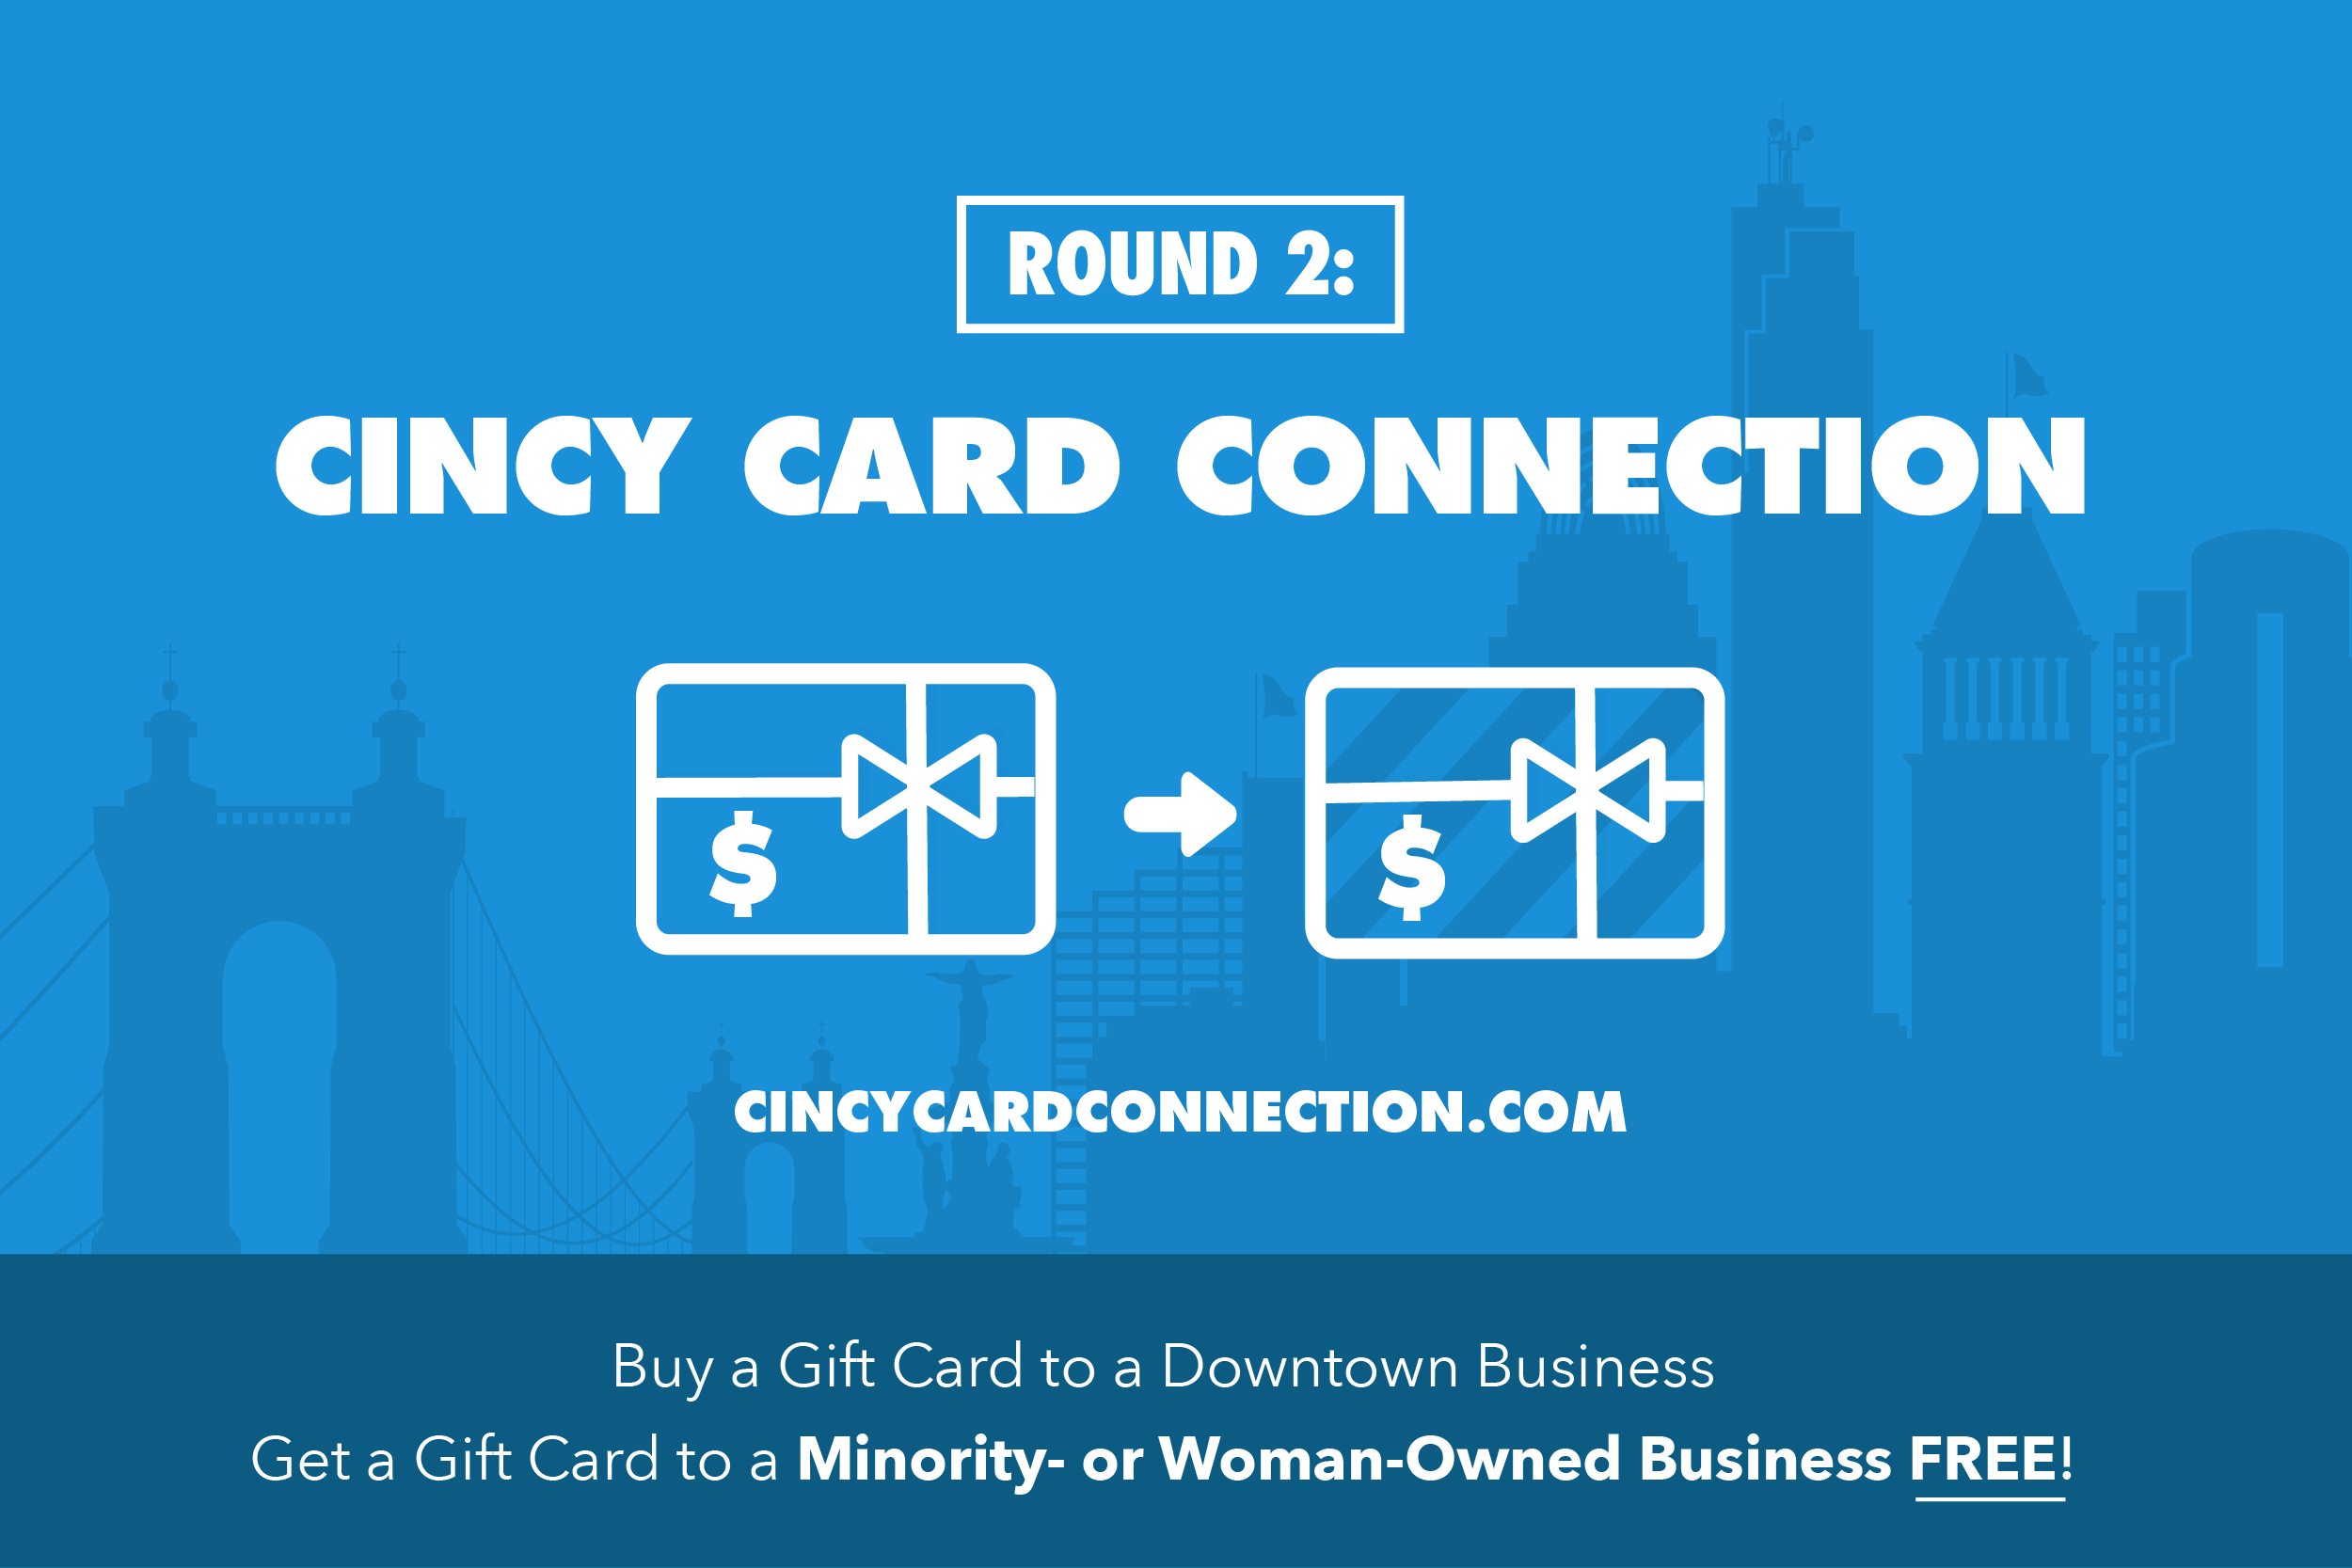 Cincy Card Connection-Round 2-600x400